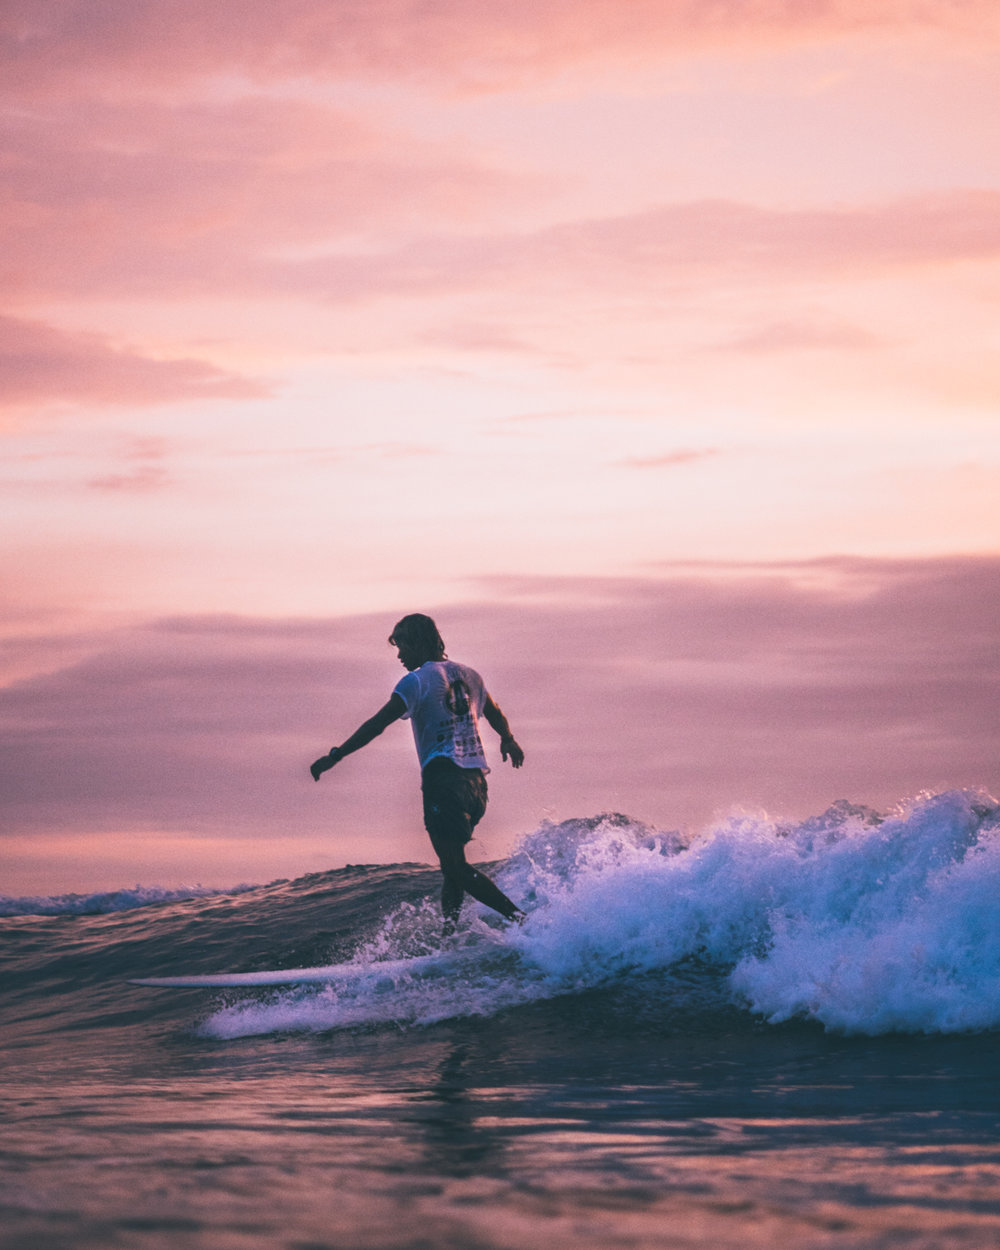 Young man surfing a mellow wave  on a longboard by the sunset in Canggu, Bali, Indonesia.